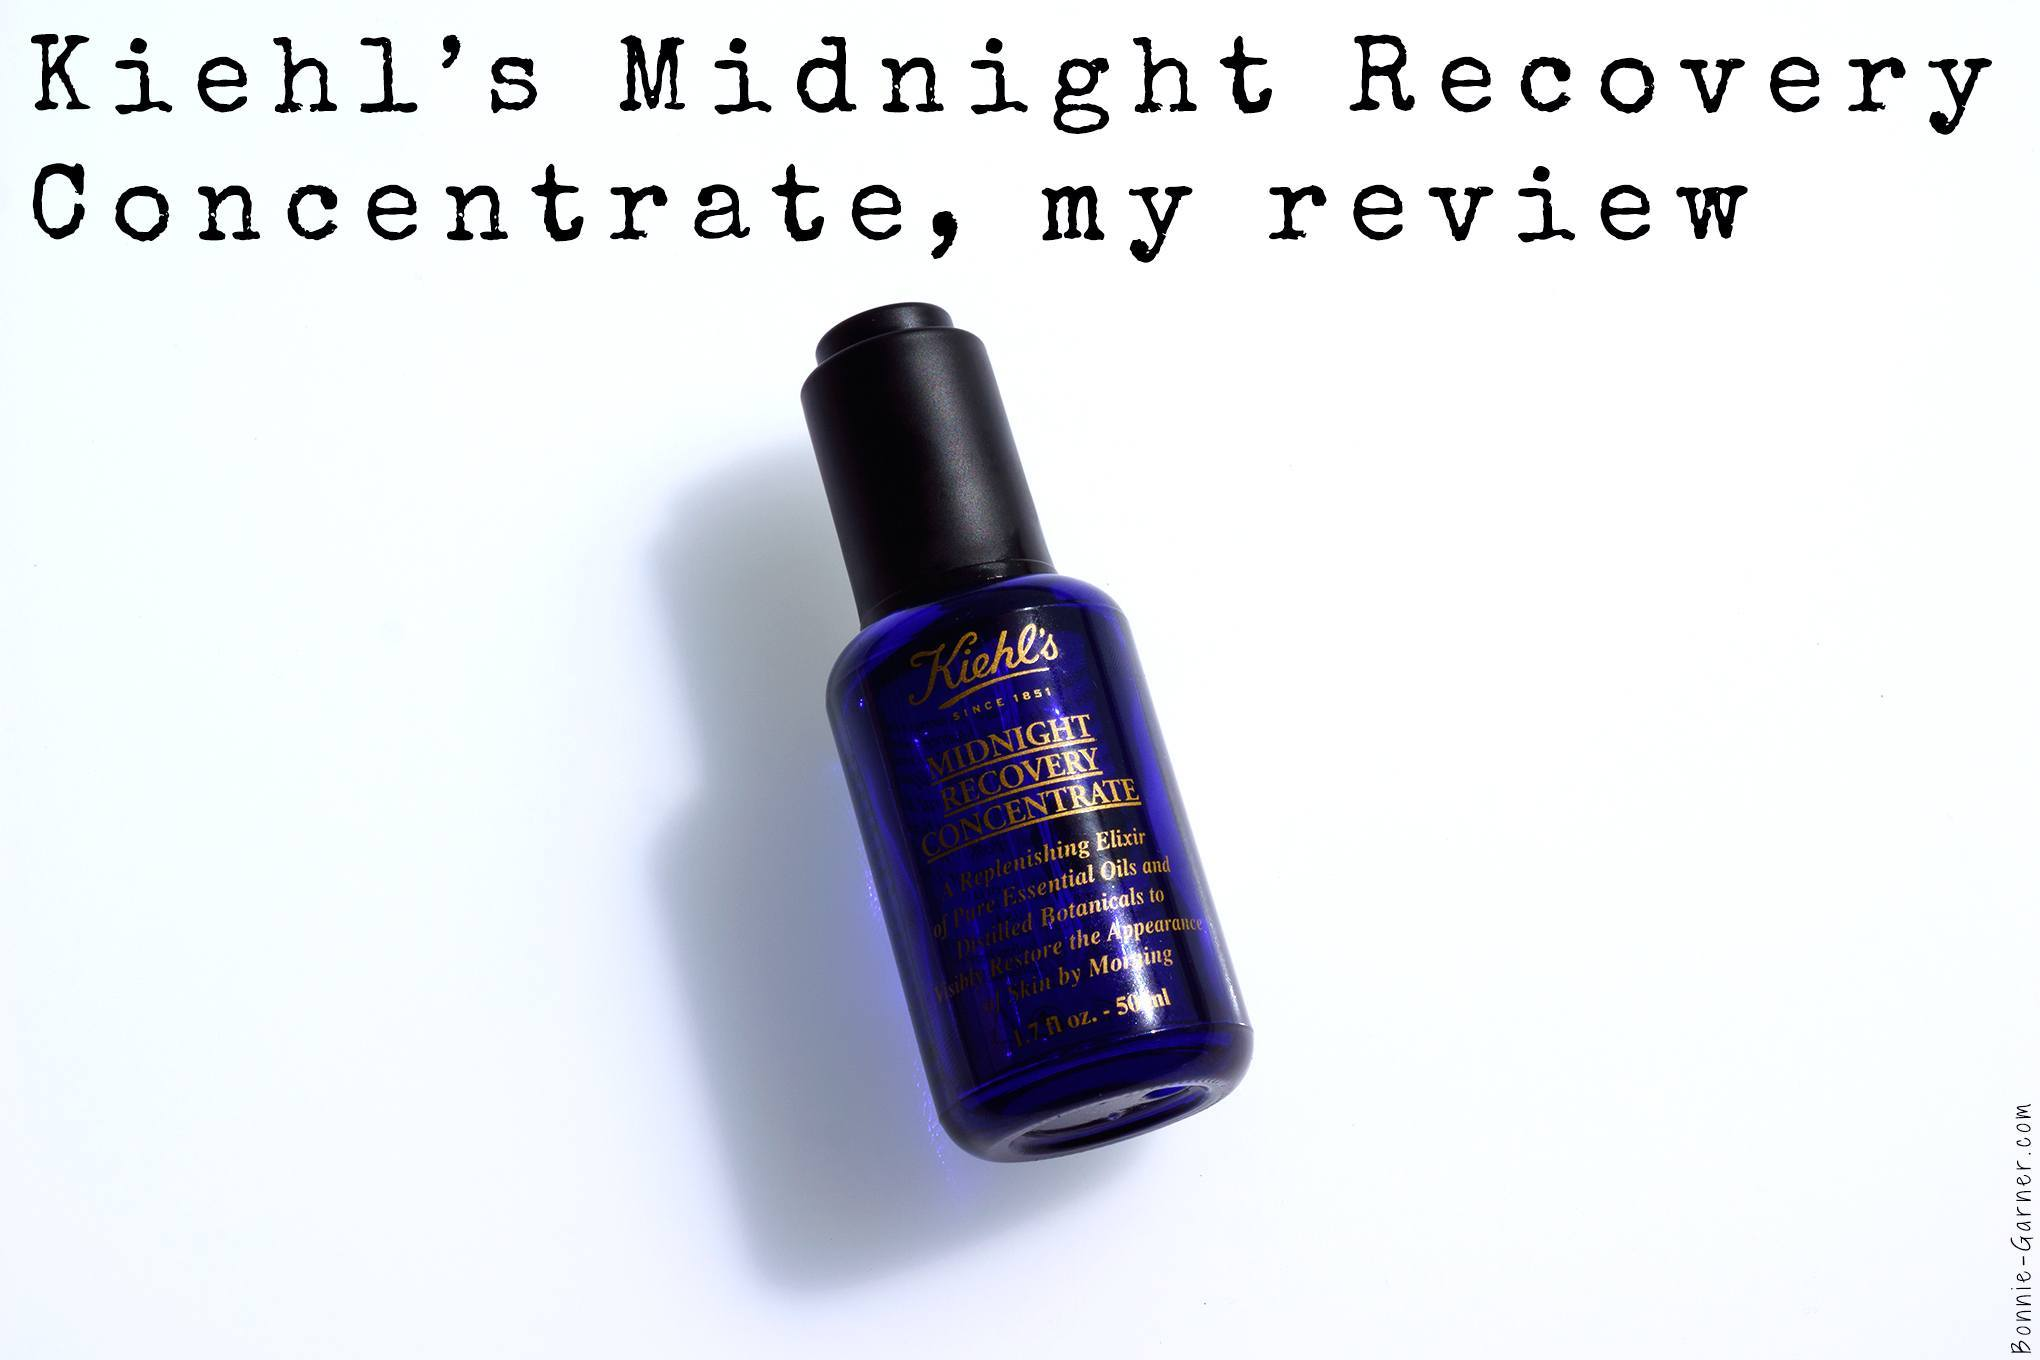 Kiehl's Midnight Recovery Concentrate, my review | Bonnie